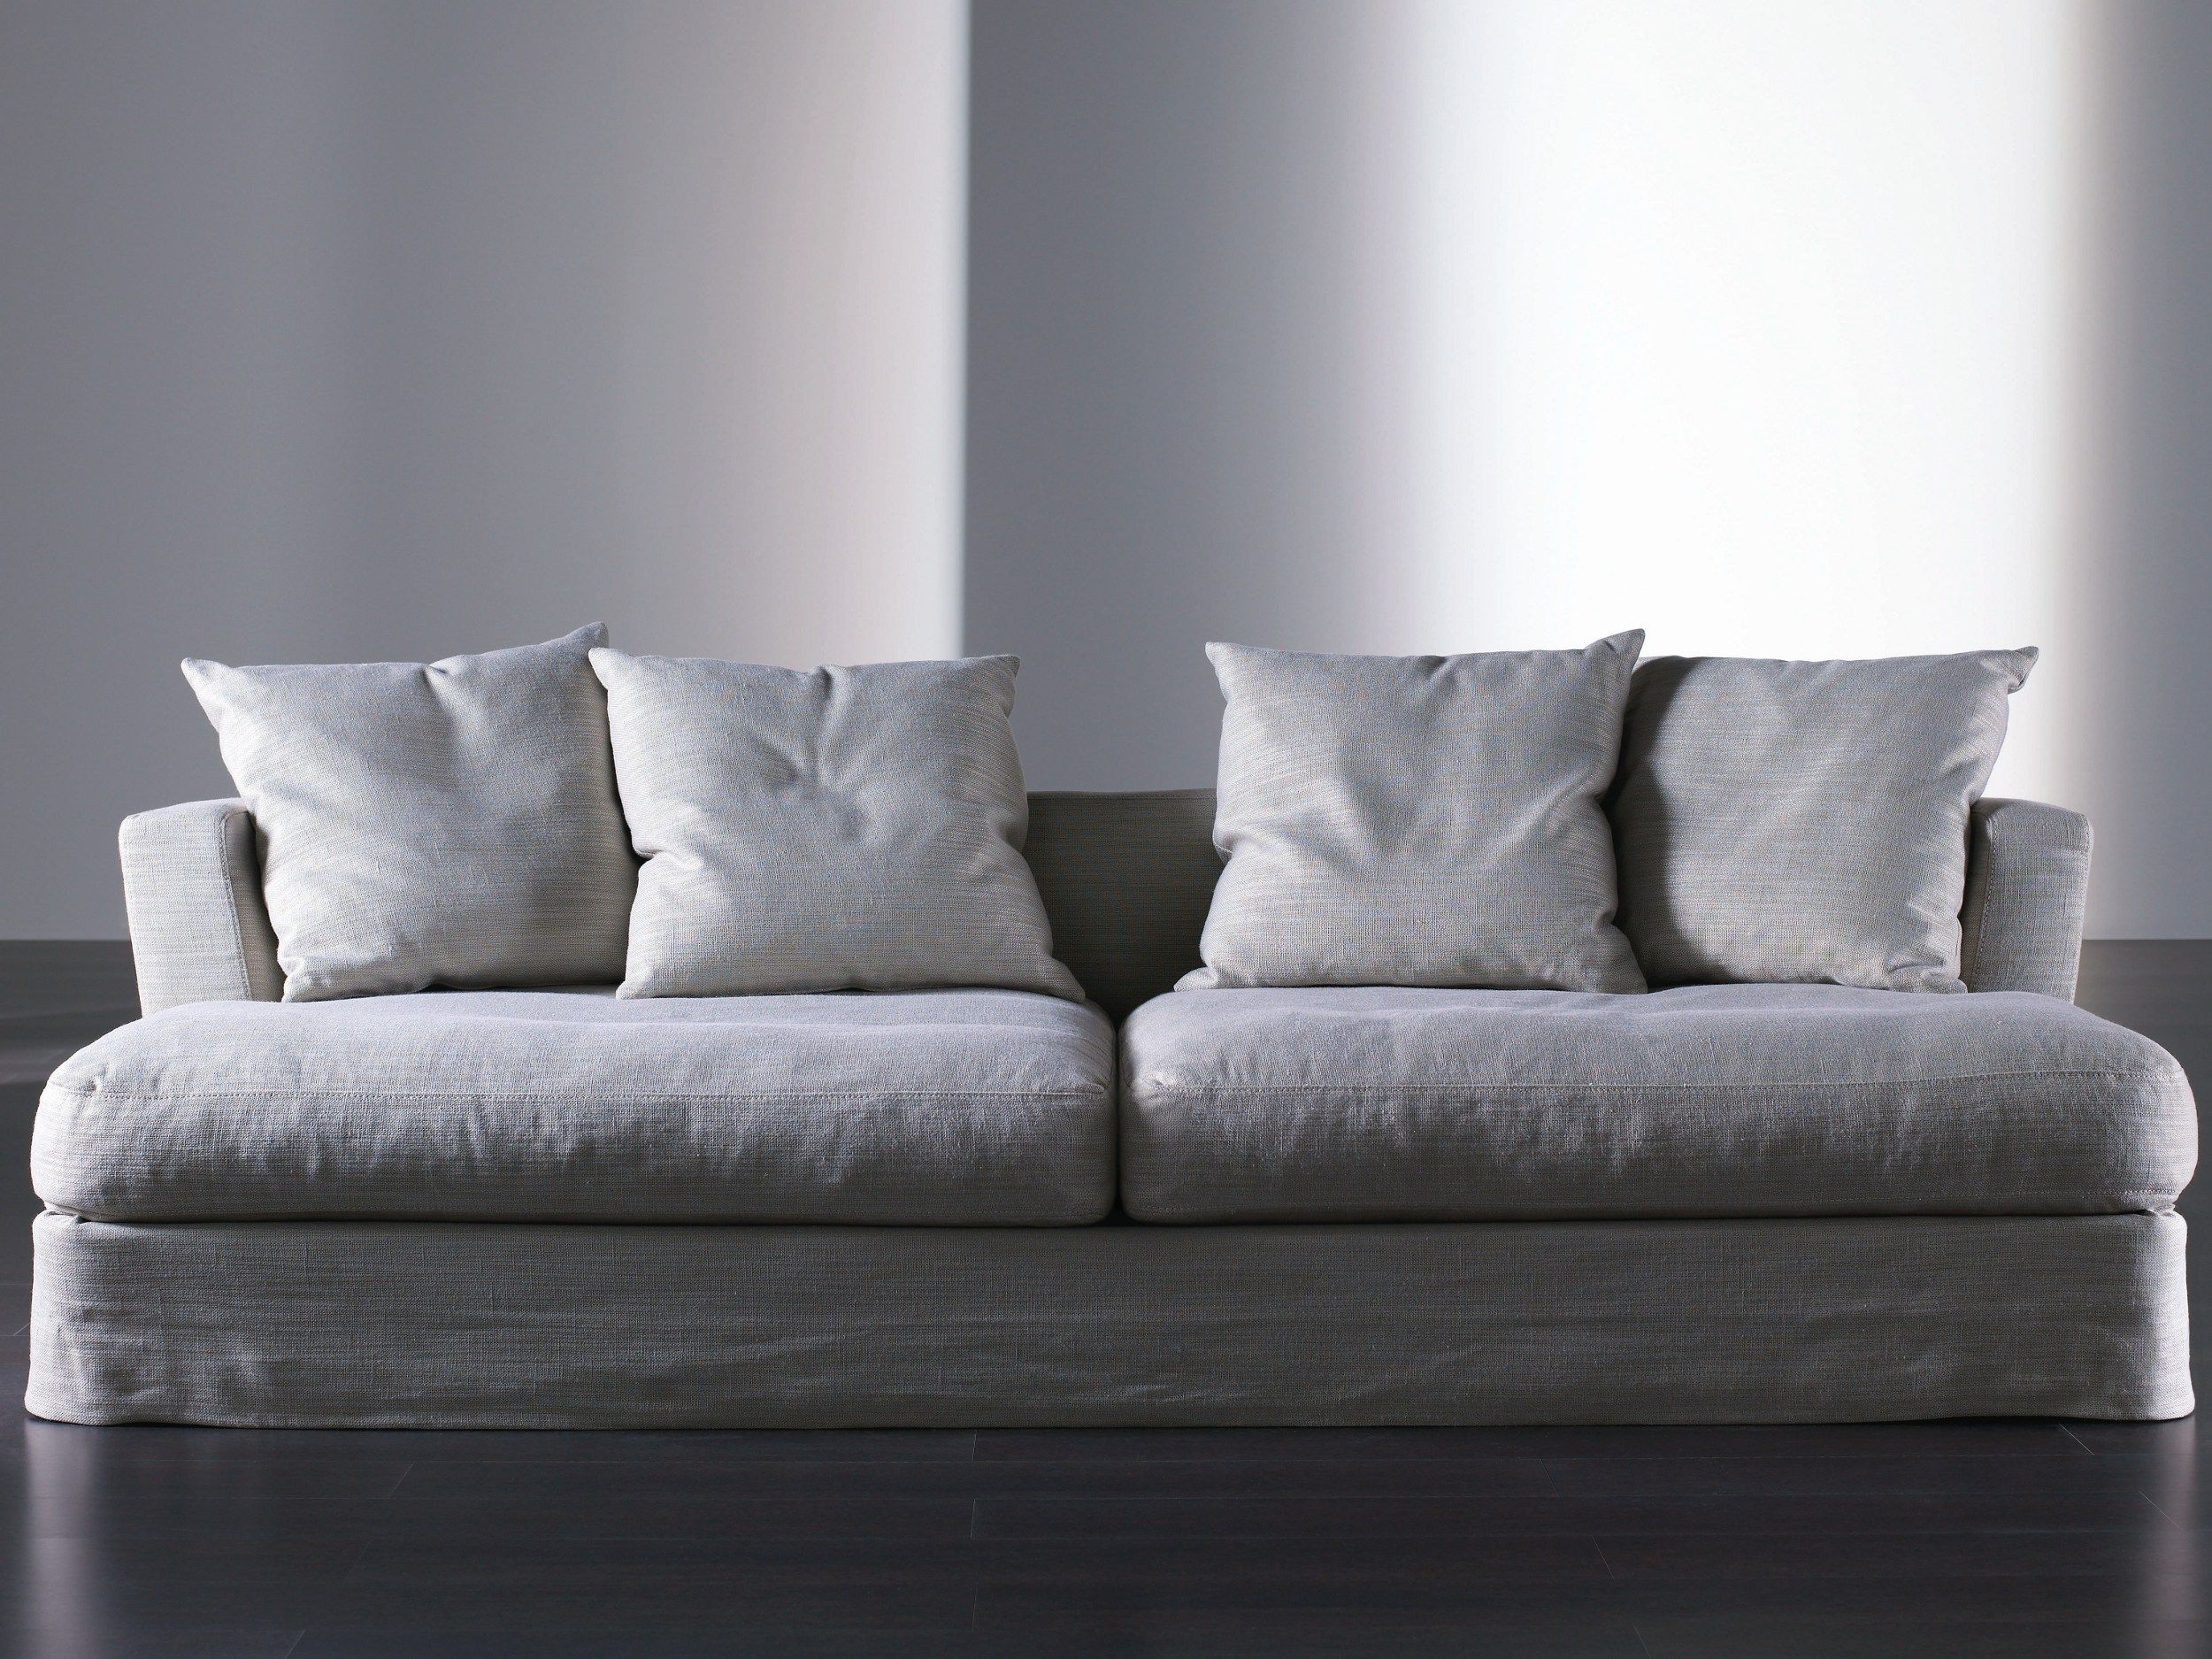 Upholstered Sofa With Removable Cover KEATON GHOST Keaton Collection By  Meridiani